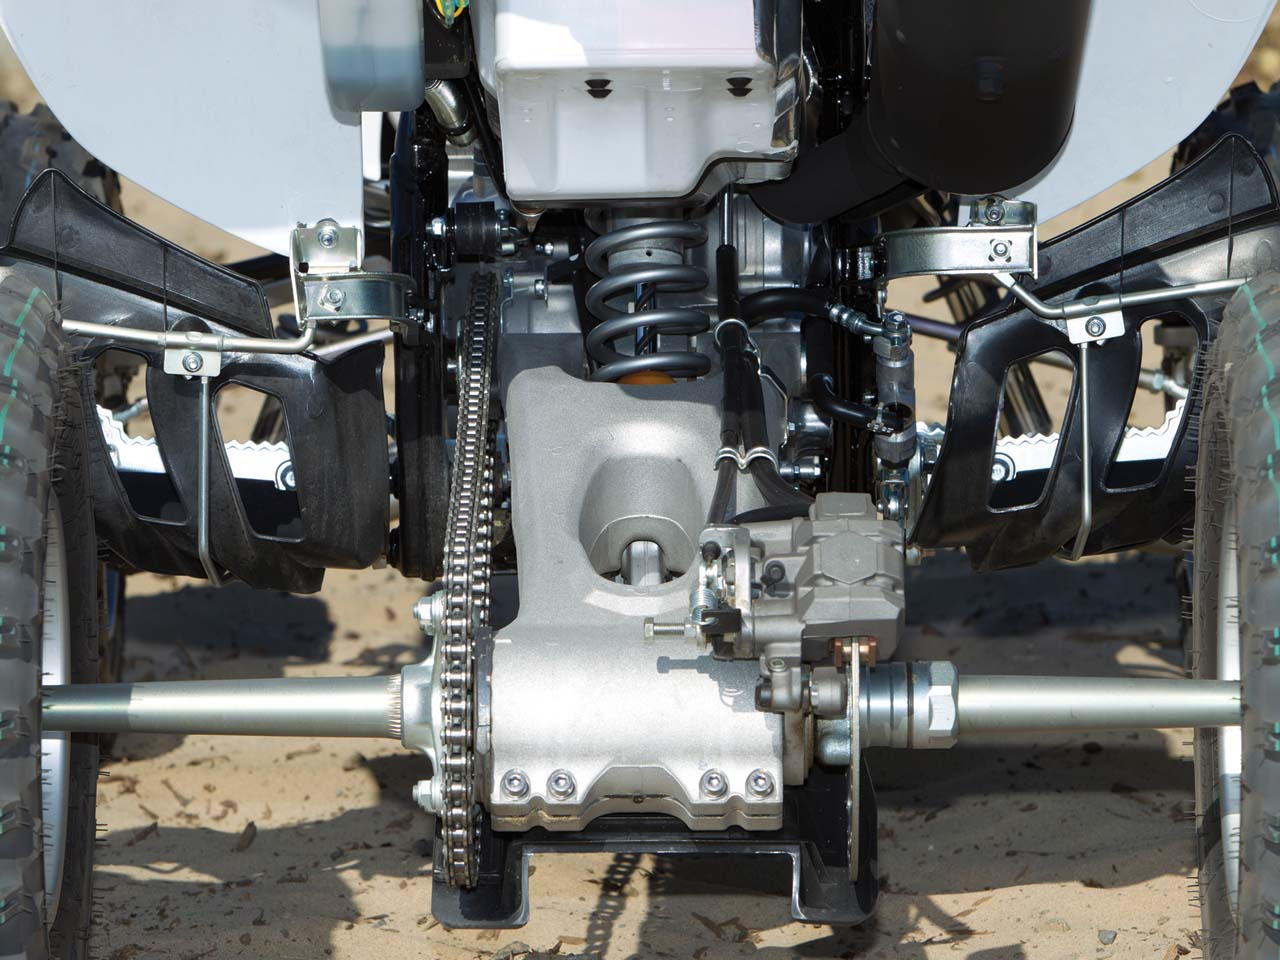 hight resolution of 2012 yamaha yfz450 close up rear suspension jpg